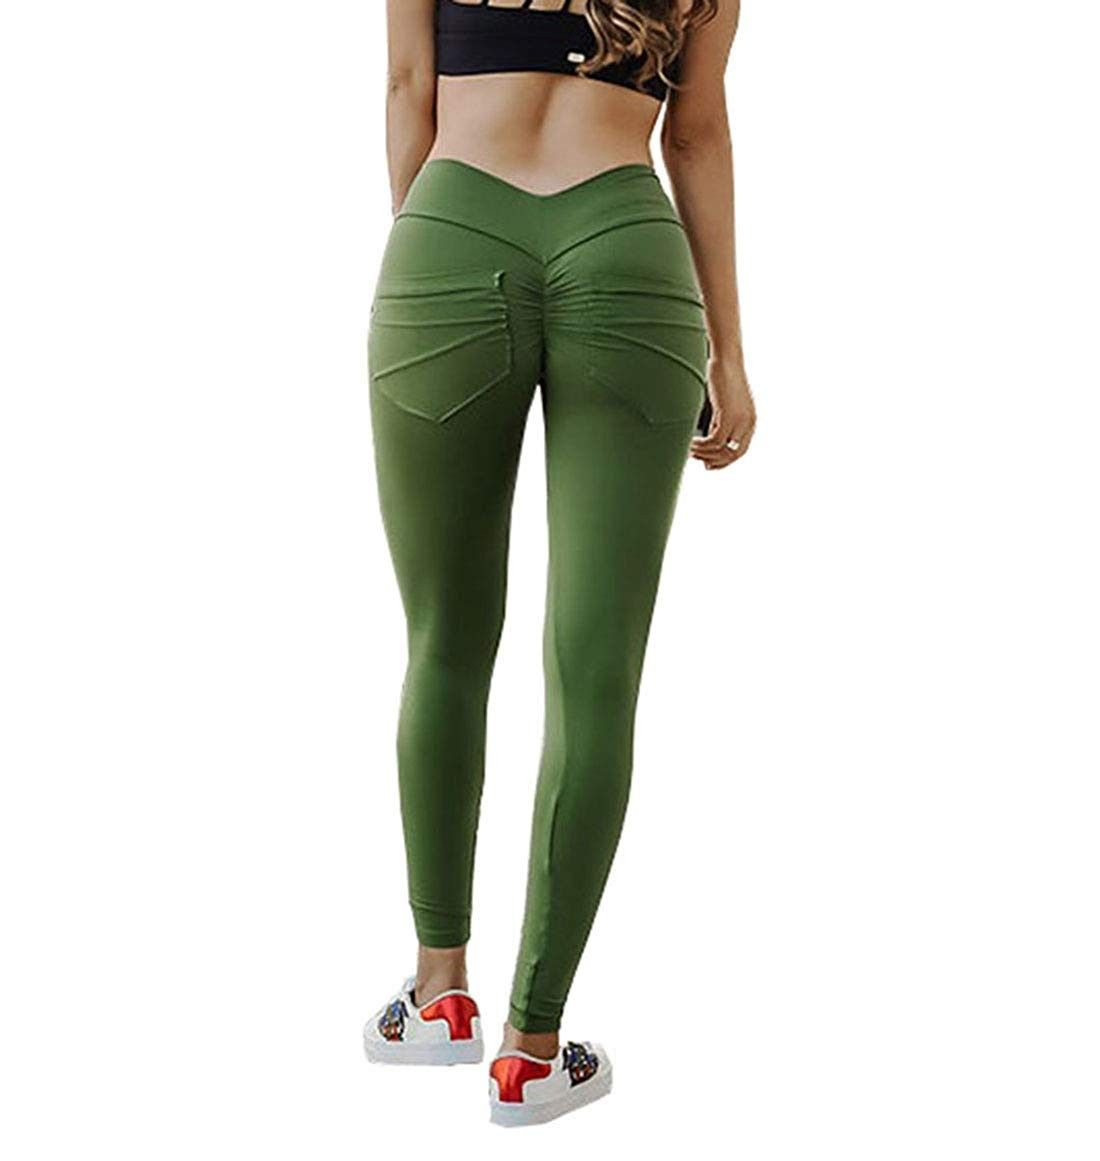 Womens Yoga Pants with Pockets Wrinkle Soft Stretch Leggings Workout Sport Fitness Gym Tights - Gree...